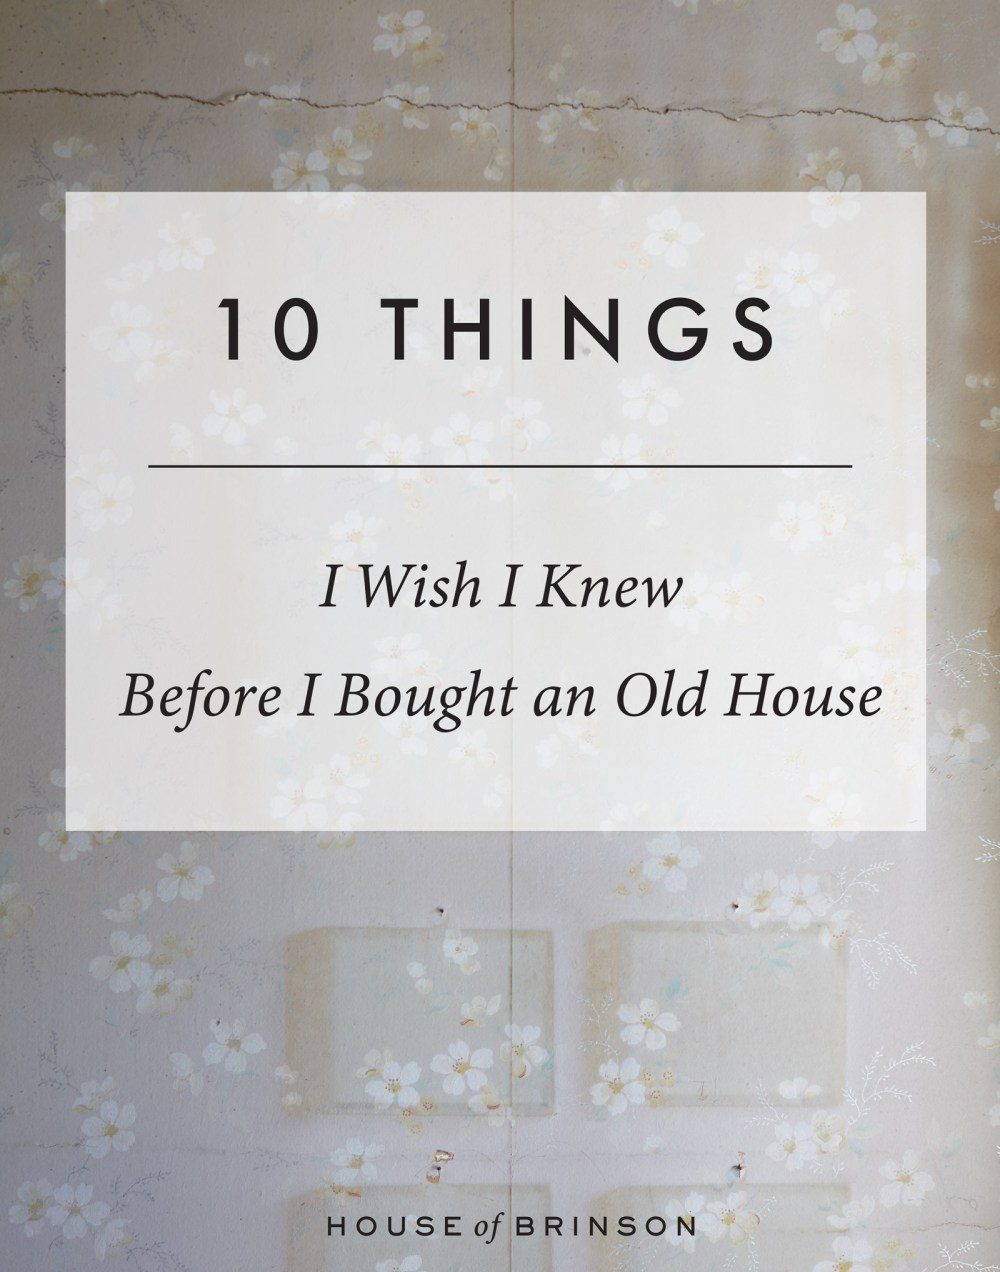 medium resolution of 10 things i wish i knew before buying an old house